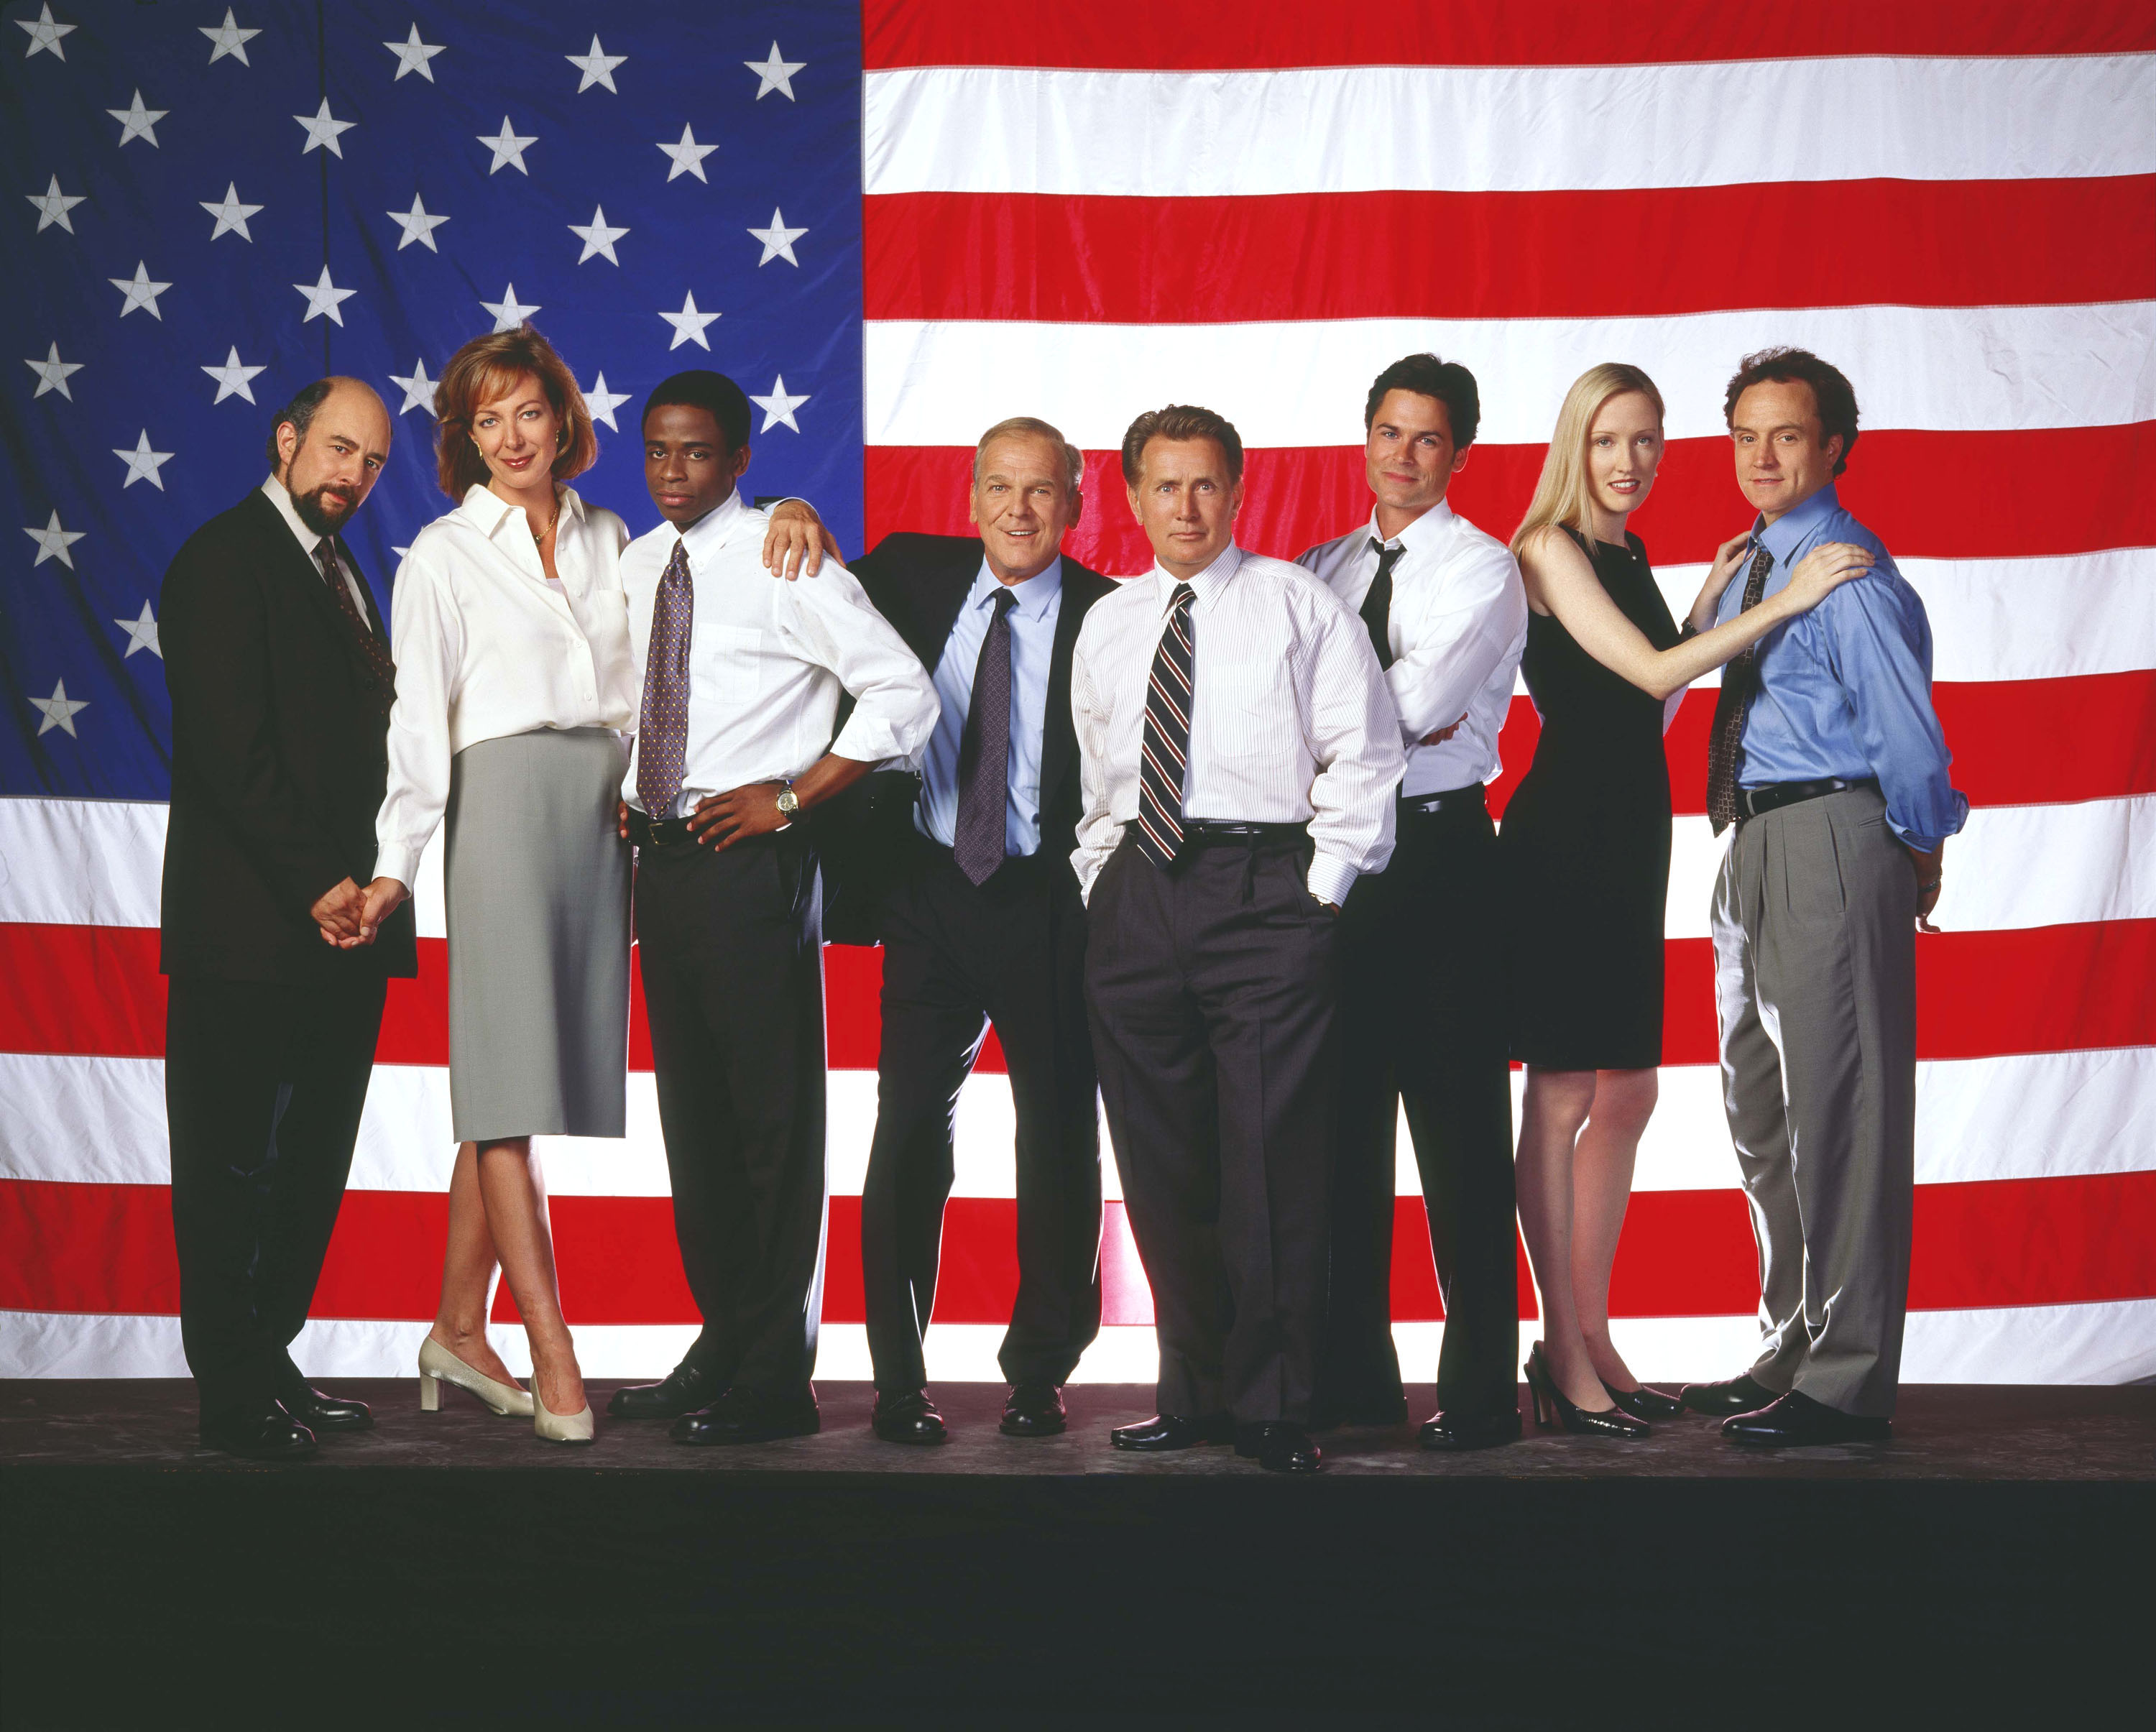 West Wing gang